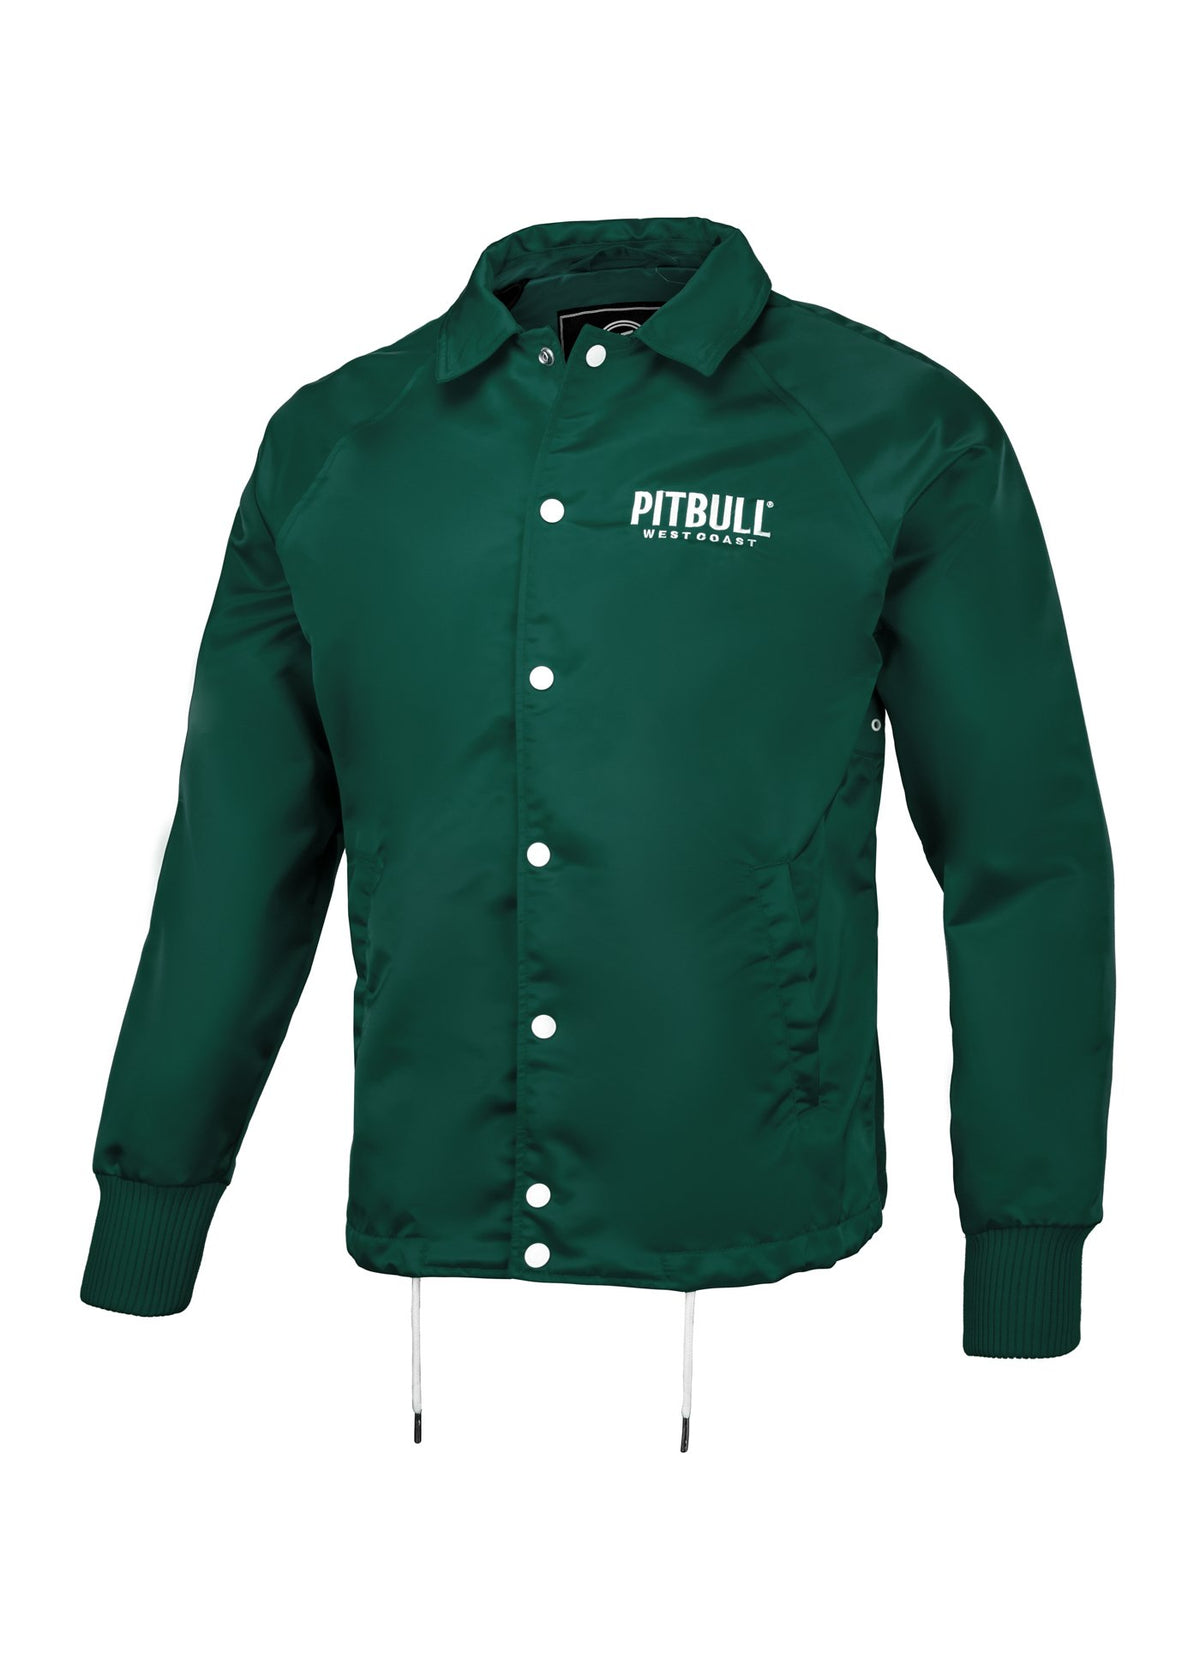 WICK Coach Jacket Green - Pitbull West Coast U.S.A.